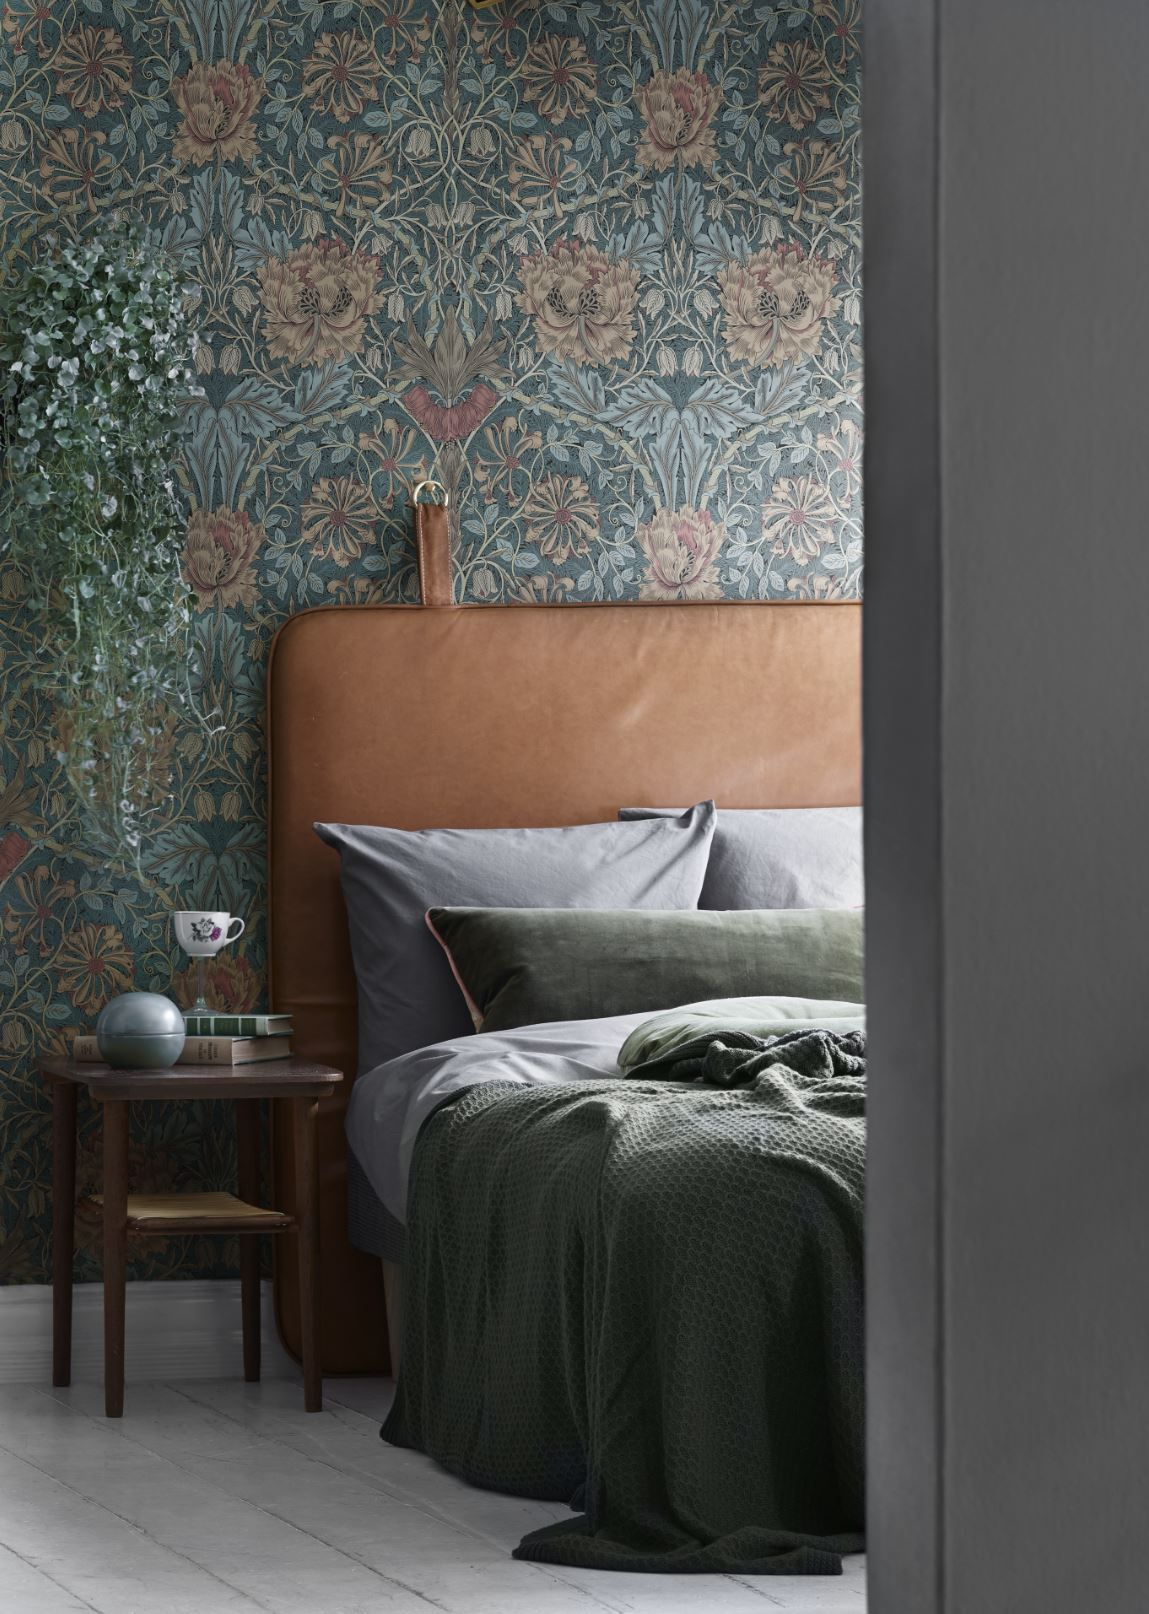 William Morris Wallpaper And Beautiful Leather Bedhead Tap The